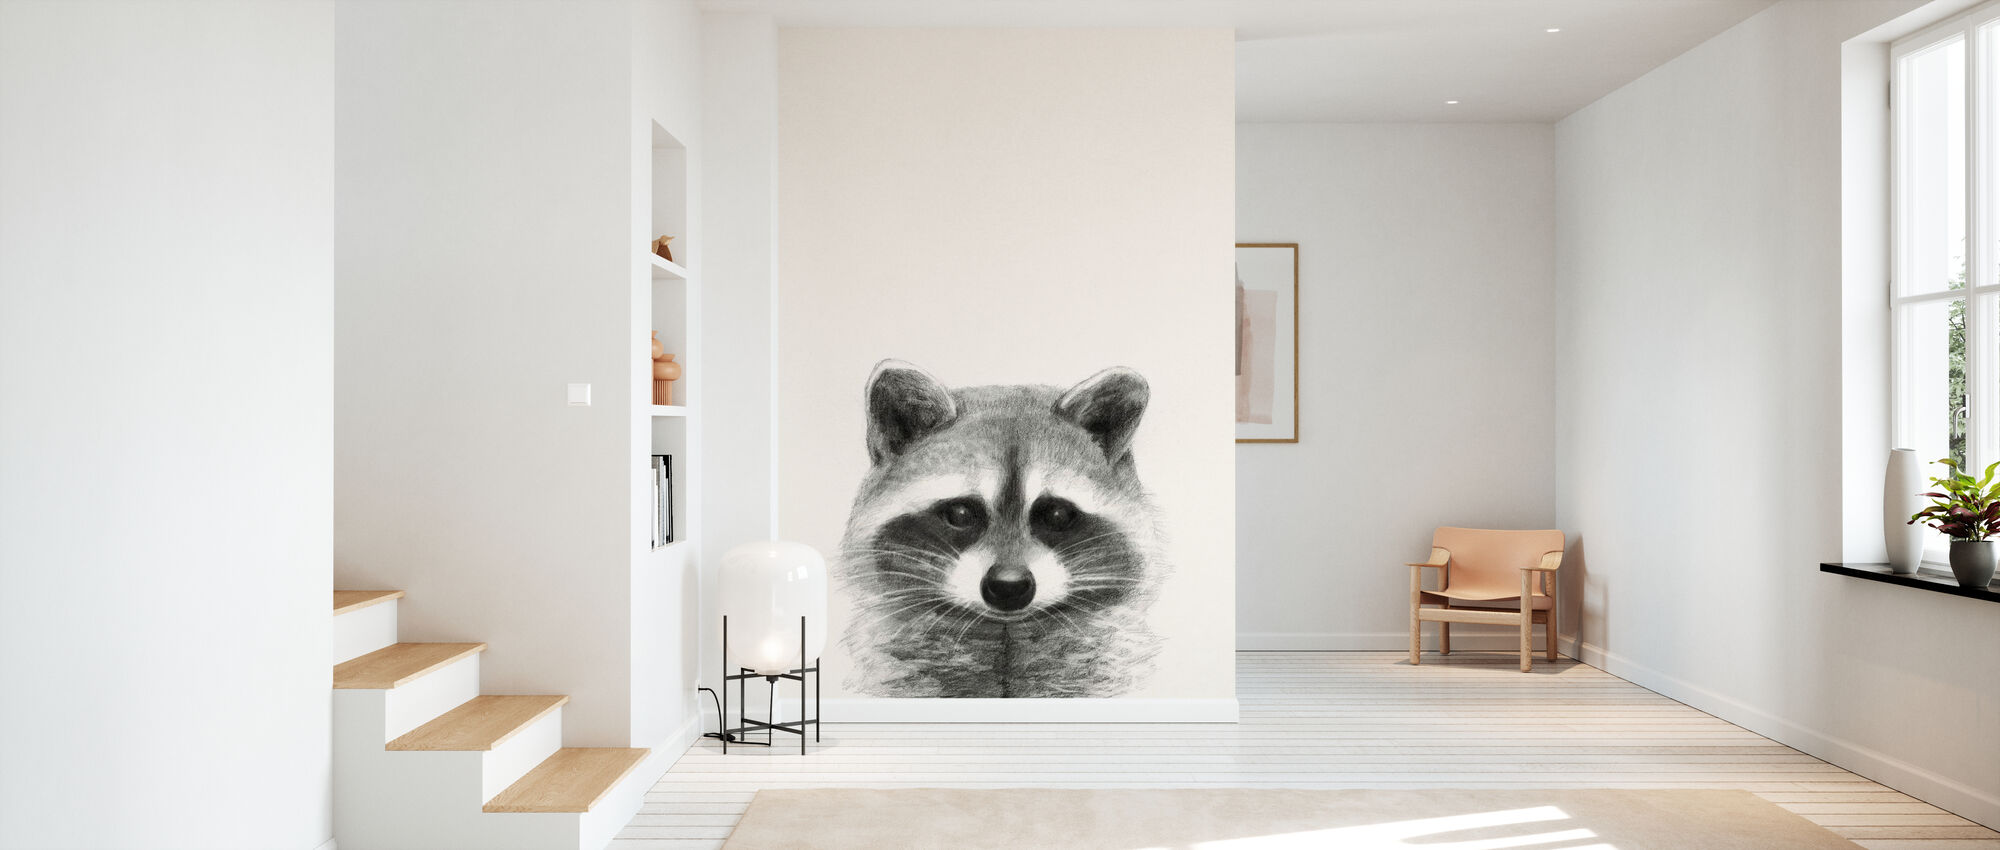 Animal Mug II - Wallpaper - Hallway